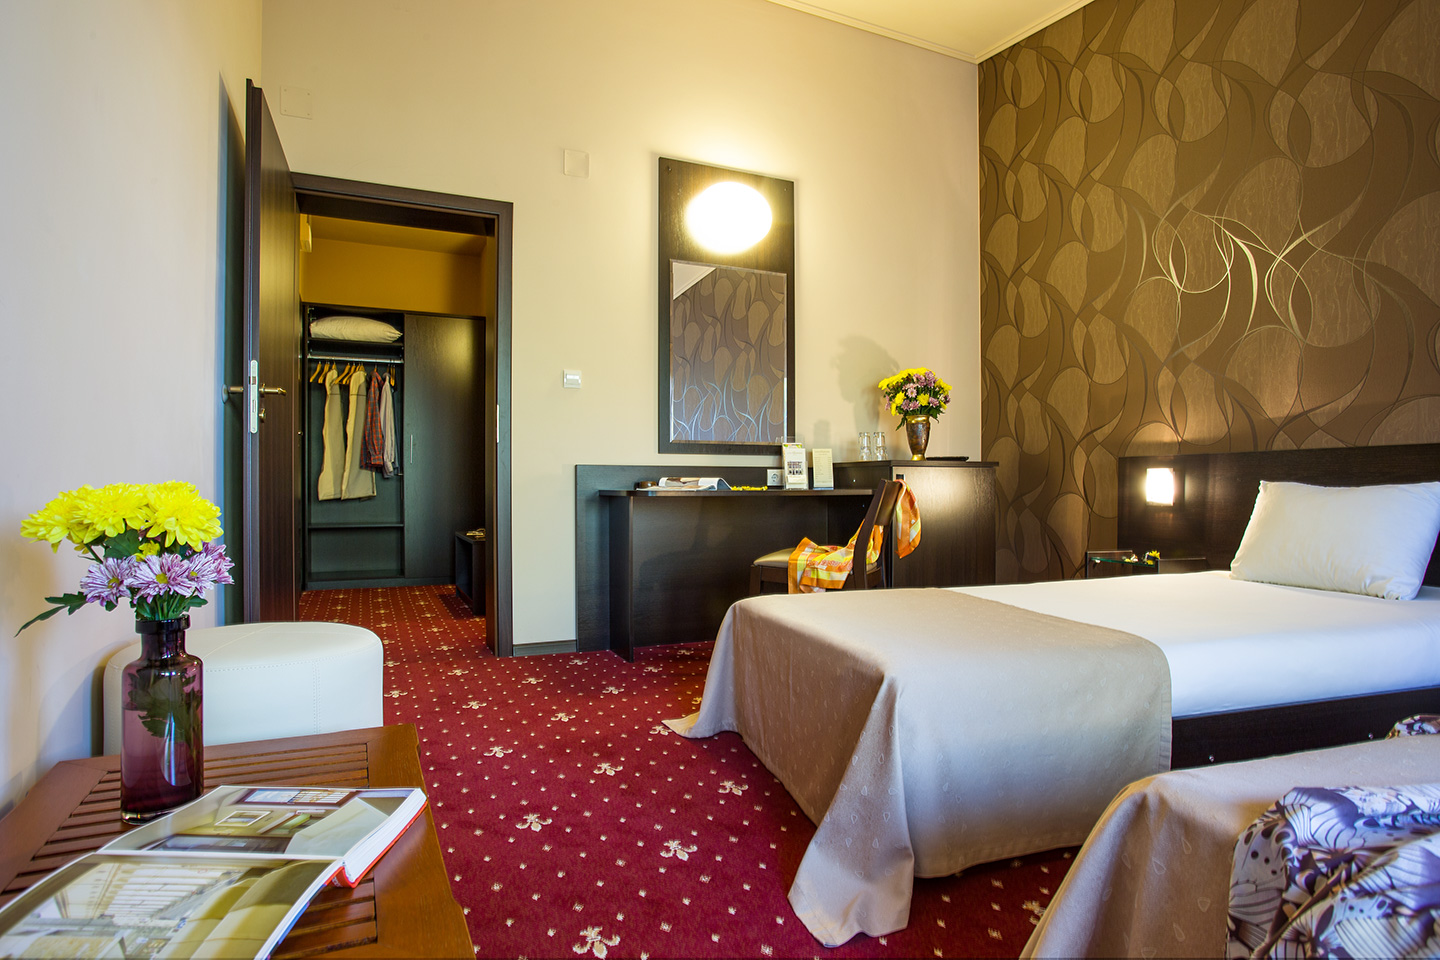 Double Room With Separate Beds Hotels In Sofia Three Star Hotel Villa Boyana Awaits